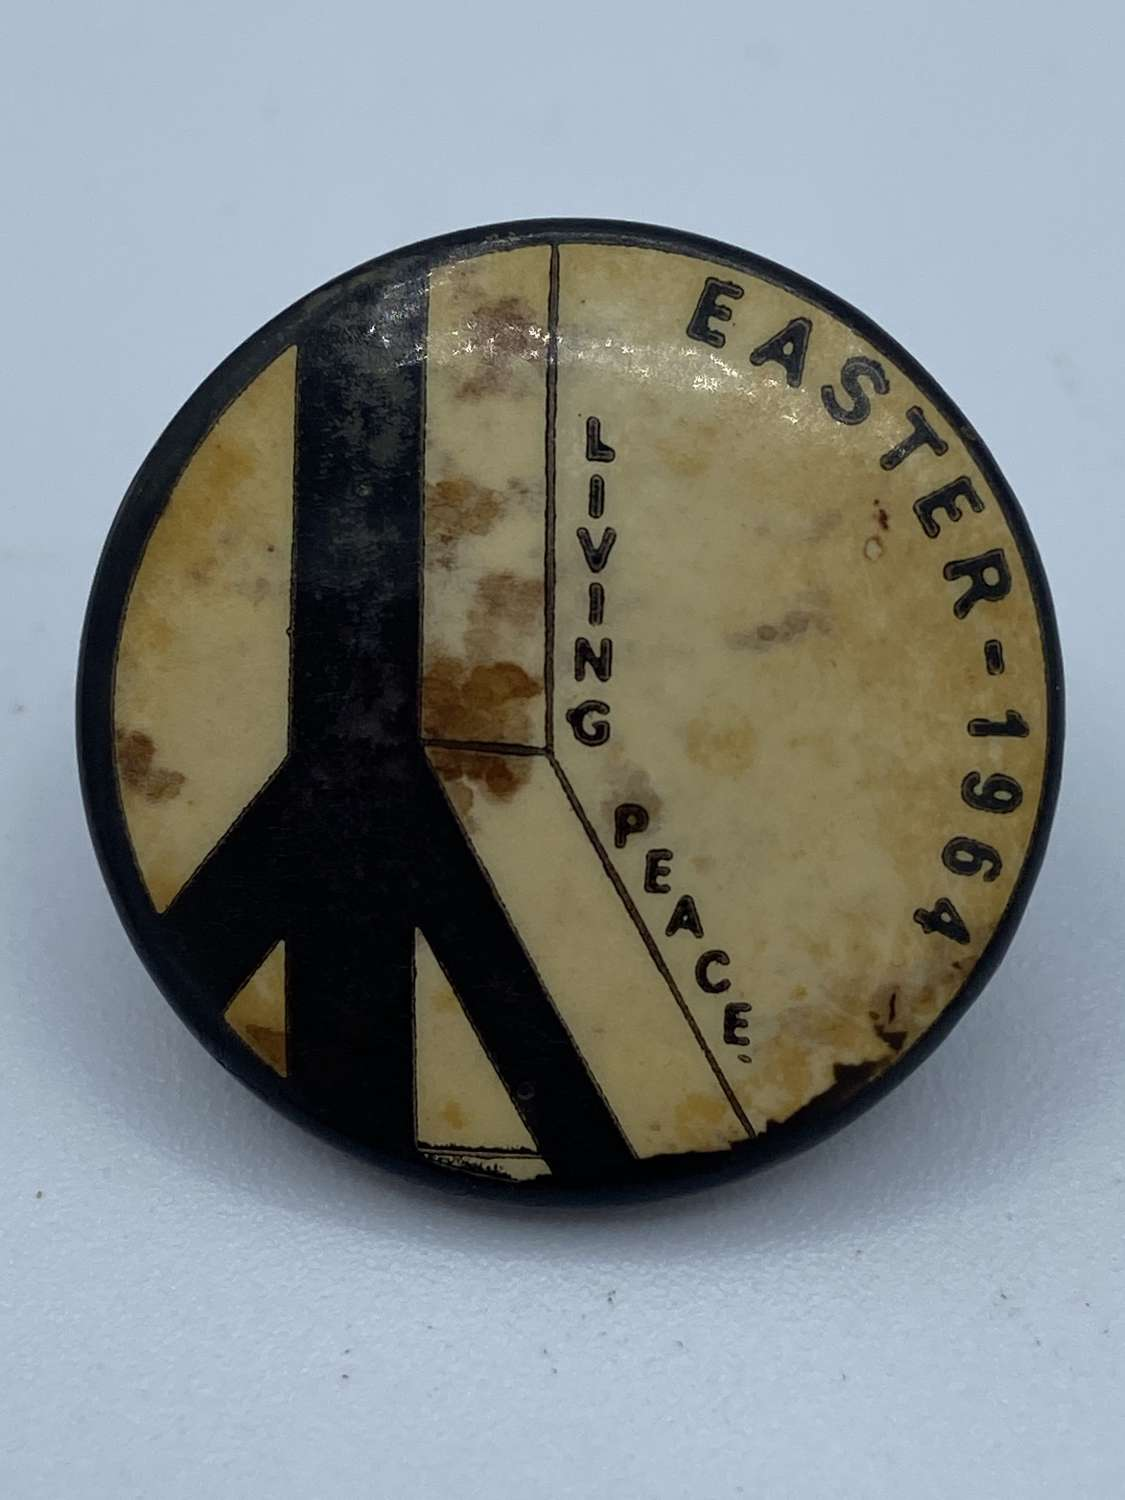 Vintage 1964 Easter March Peace Protest Political Campaign Badge CND